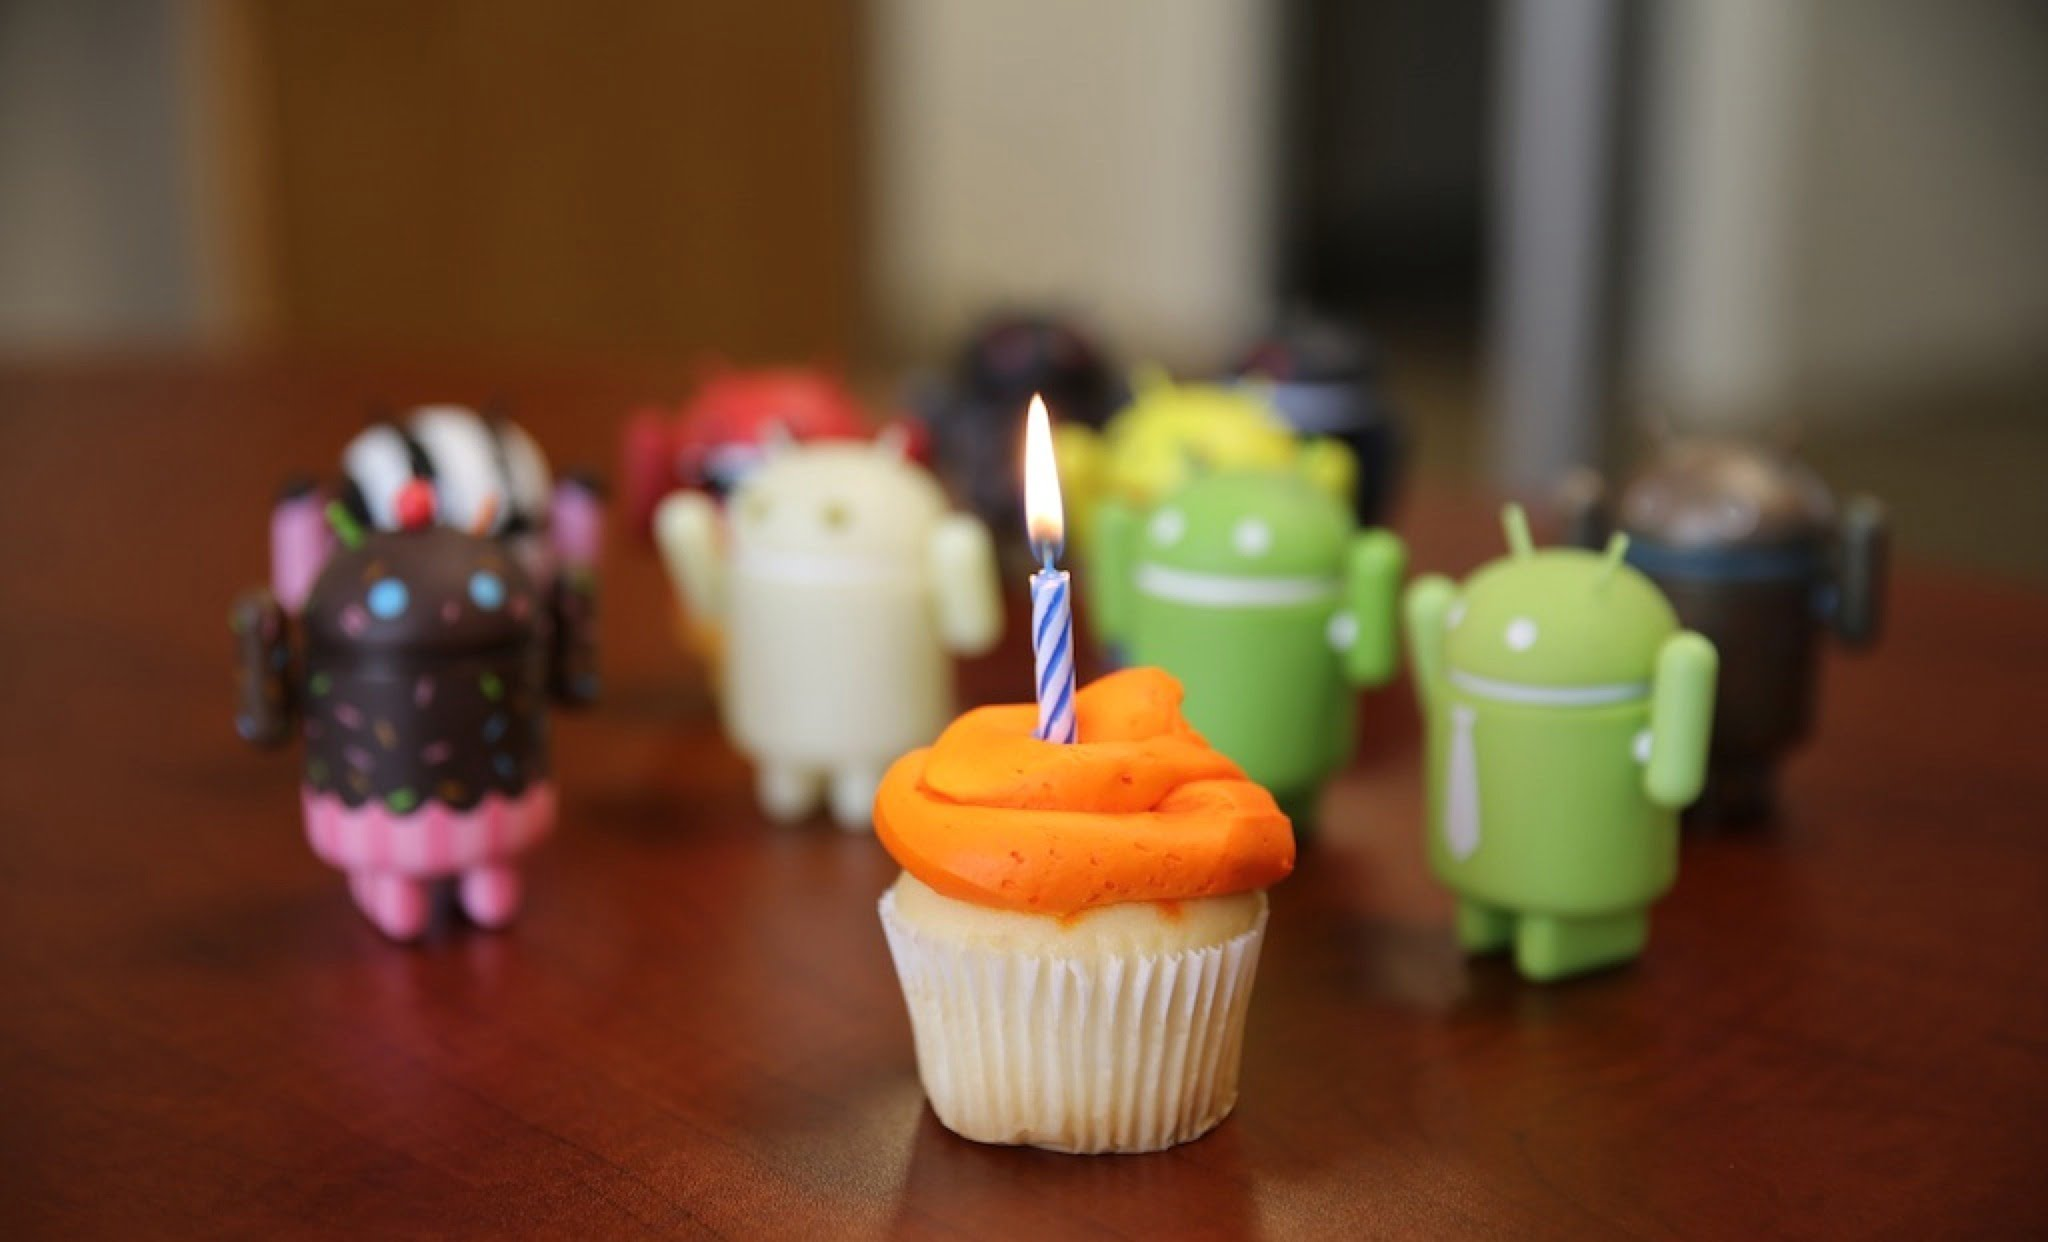 Here's to the 10th Anniversary of Android OS!